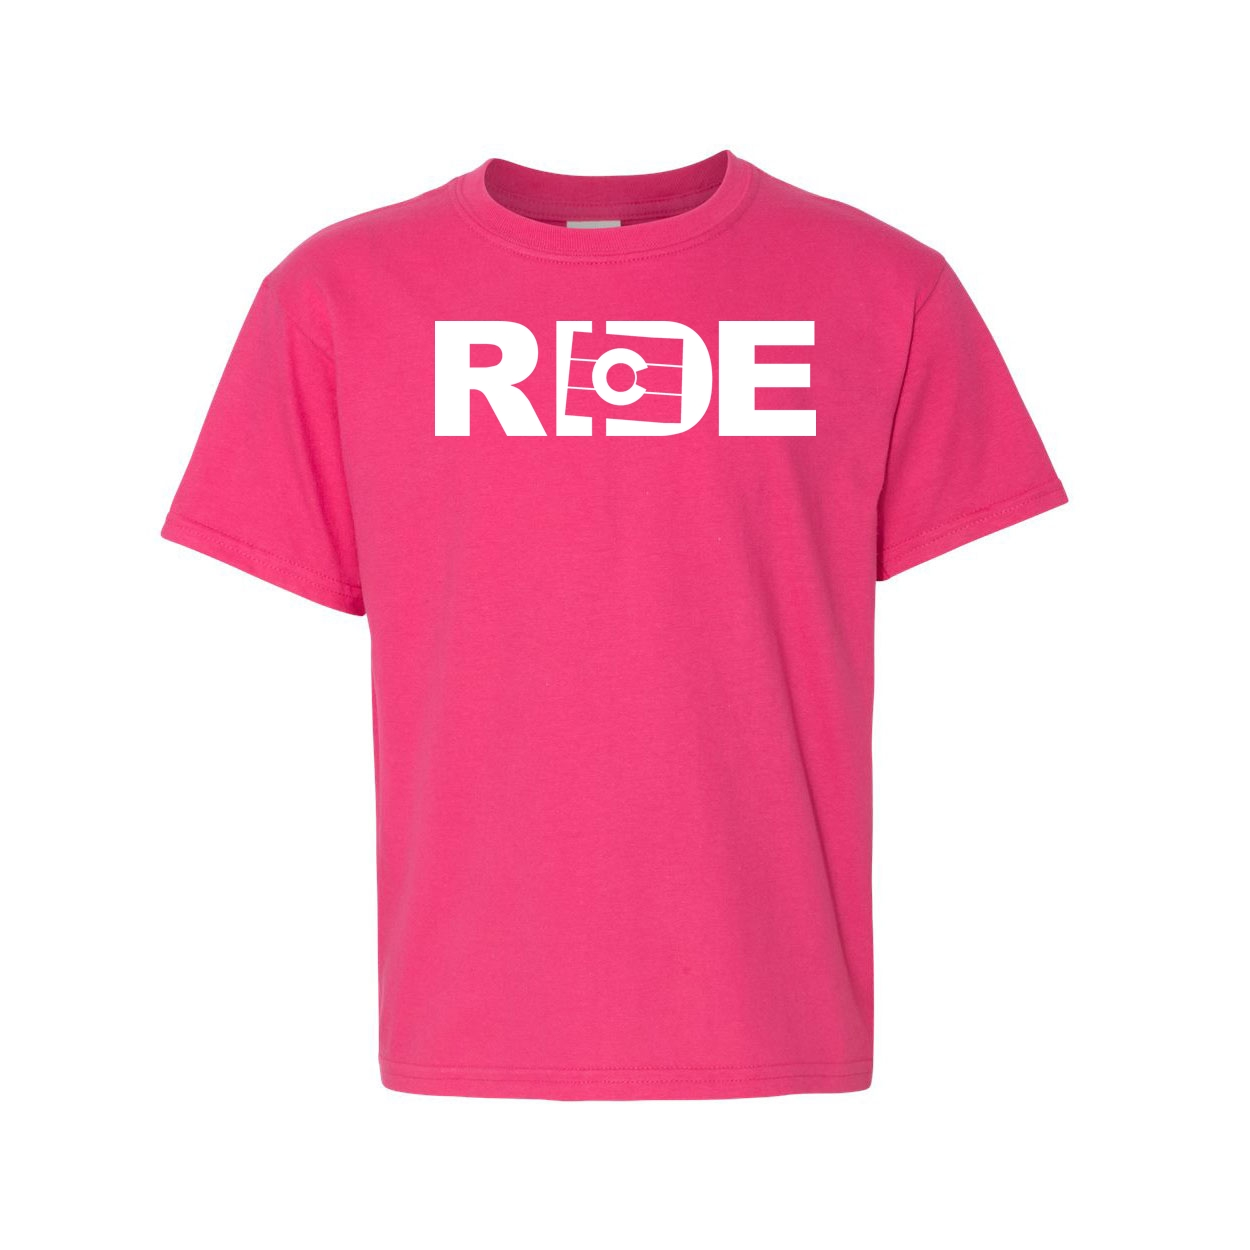 Ride Colorado Classic Youth T-Shirt Pink (White Logo)